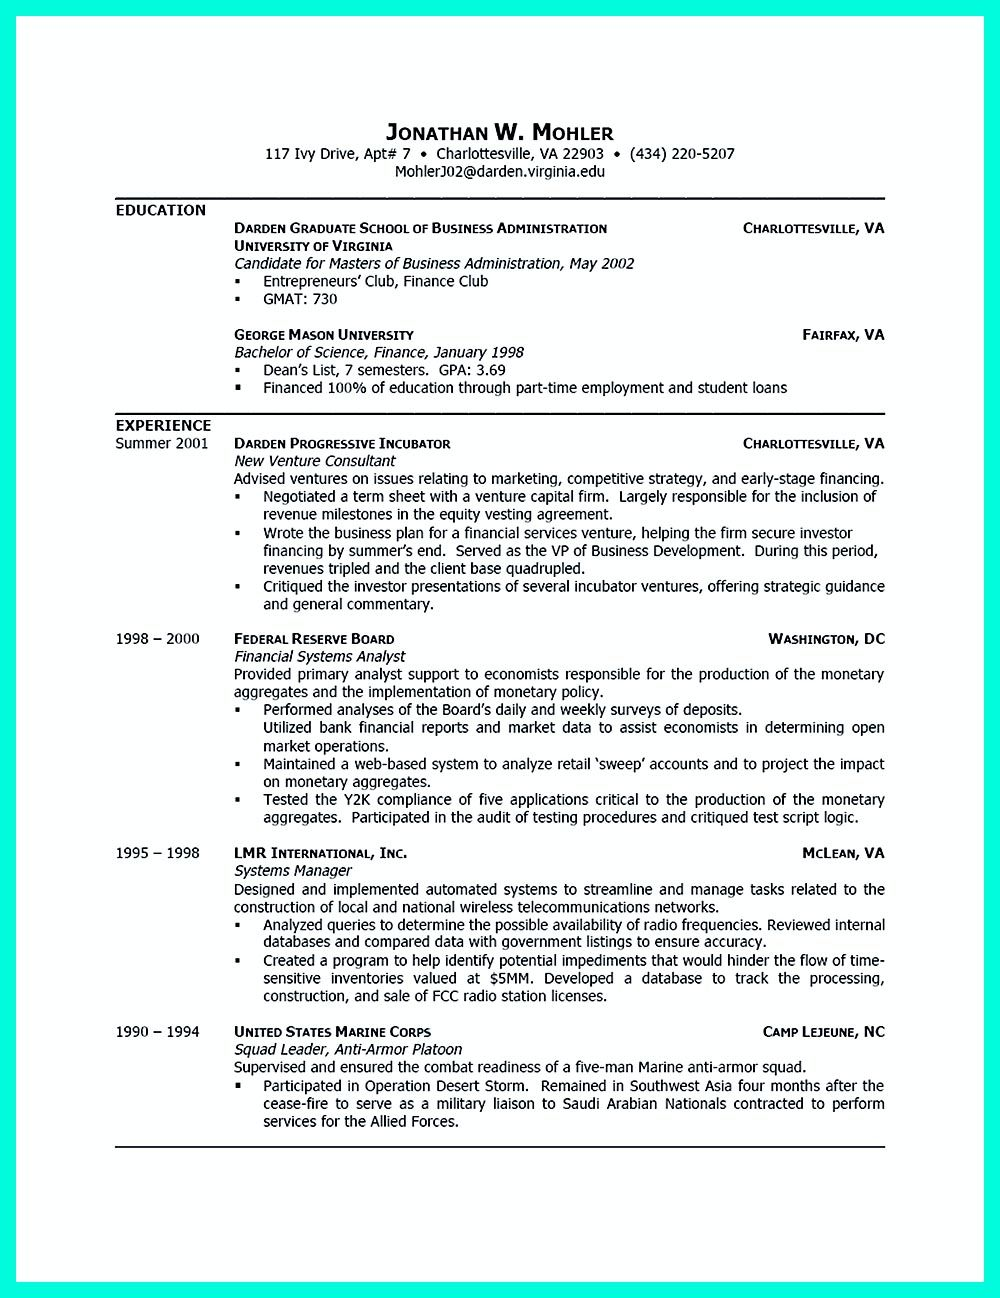 Resume Examples For College Students With No Experience College Resume Is Designed For College Students Either With Or